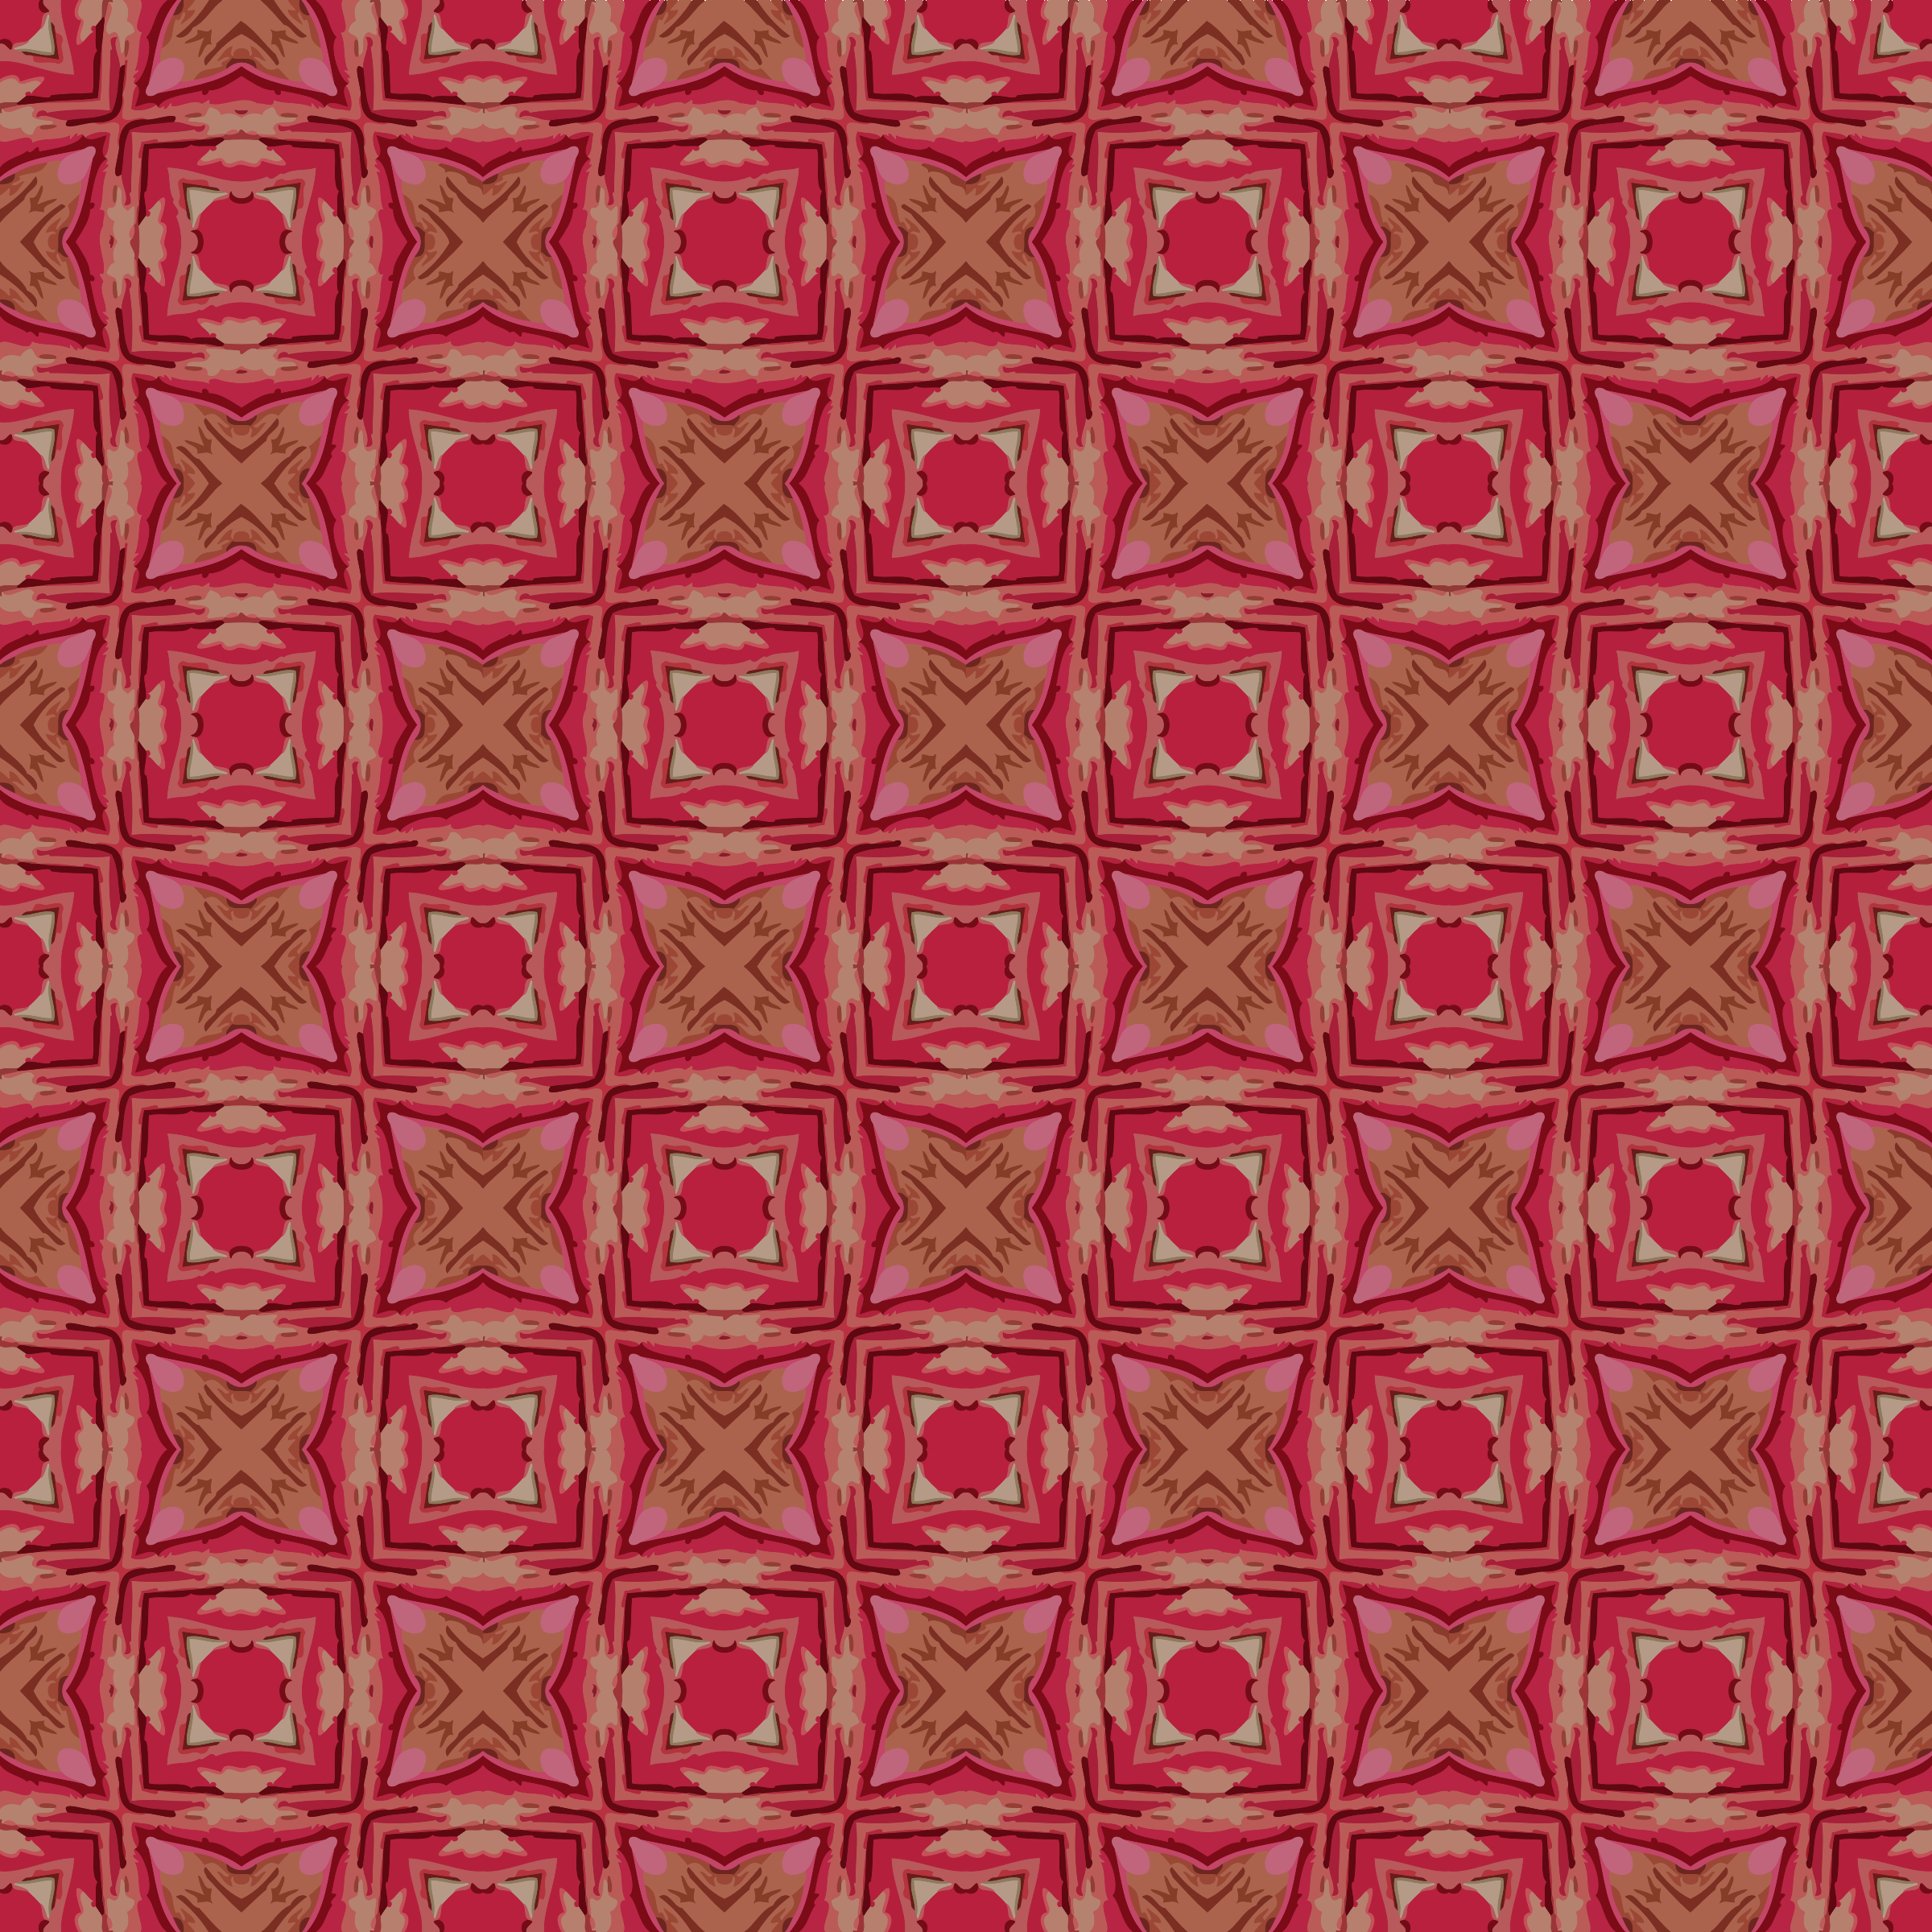 Background pattern 170 (colour 6) by Firkin